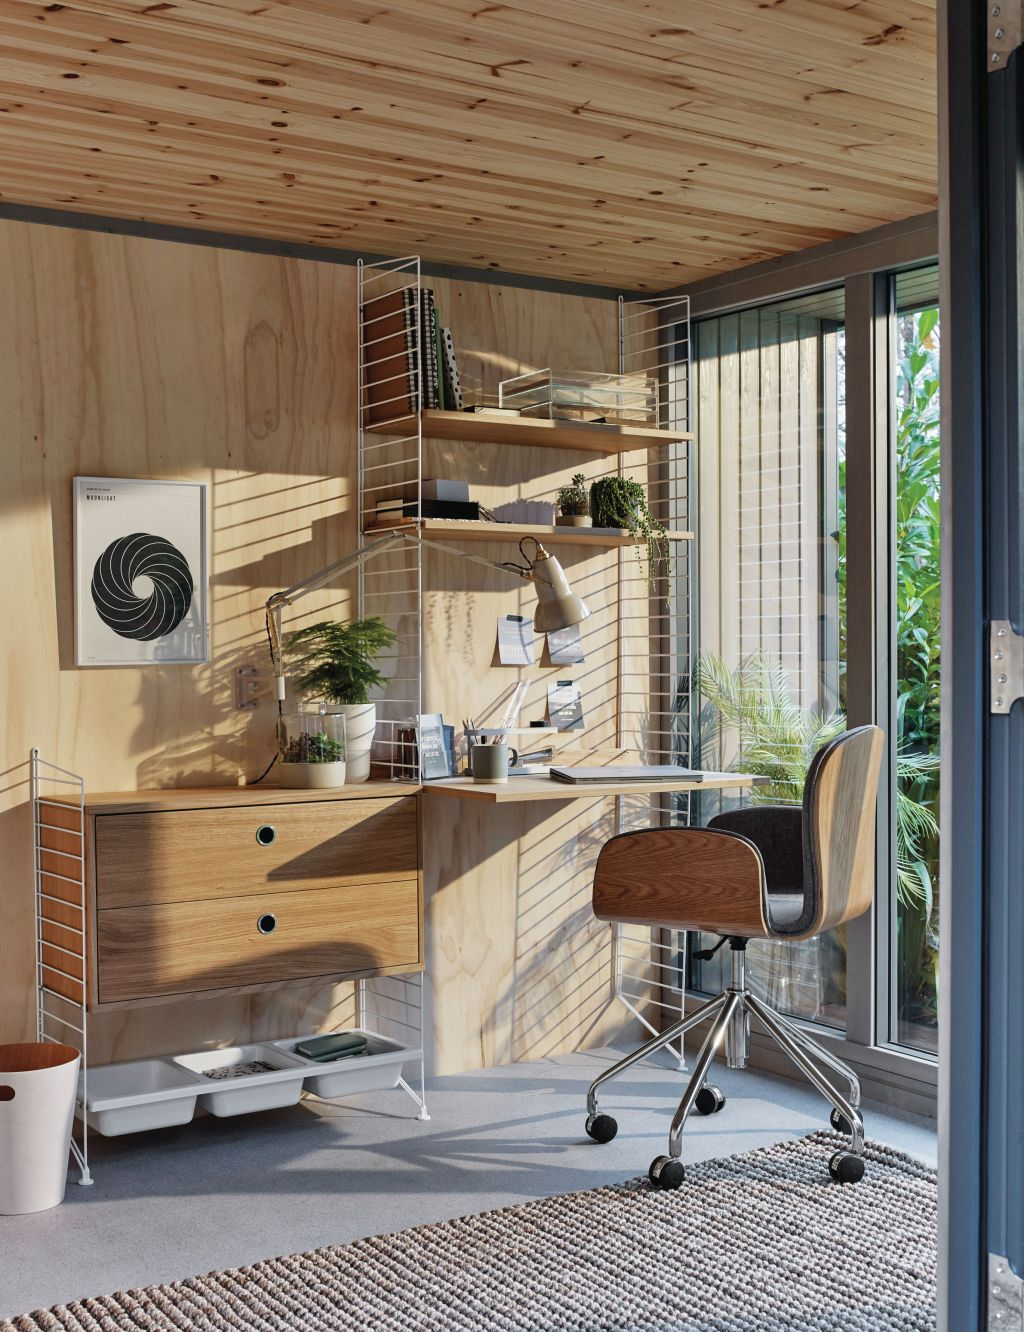 Best Desks 8 Practical But Still Stylish Picks For Working From Home Real Homes